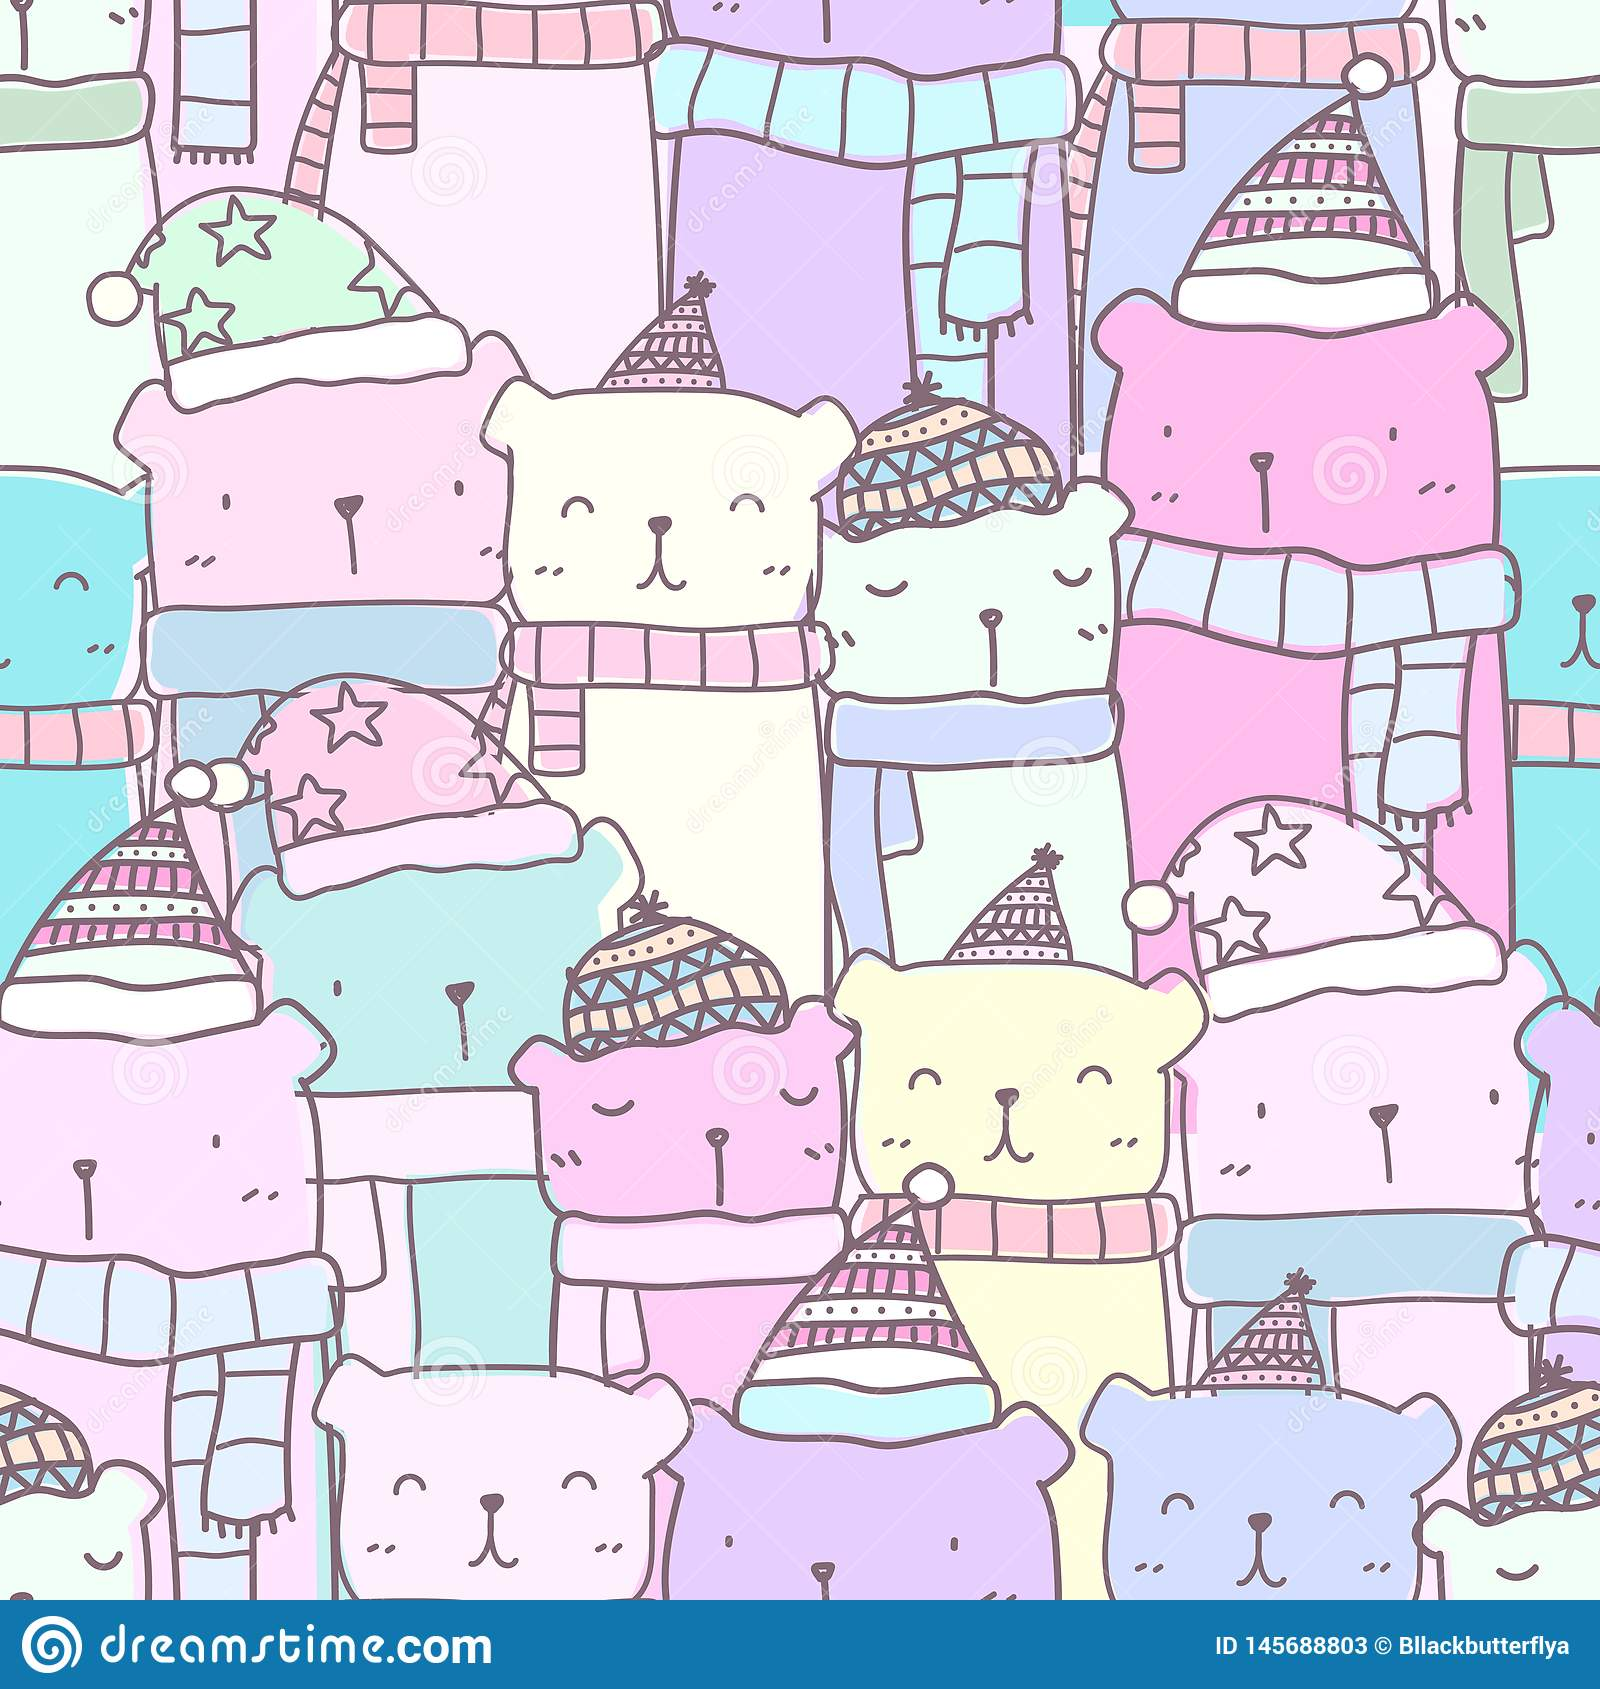 Kawaii Pastel Wallpaper Stock Illustrations 2 082 Kawaii Pastel Wallpaper Stock Illustrations Vectors Clipart Dreamstime